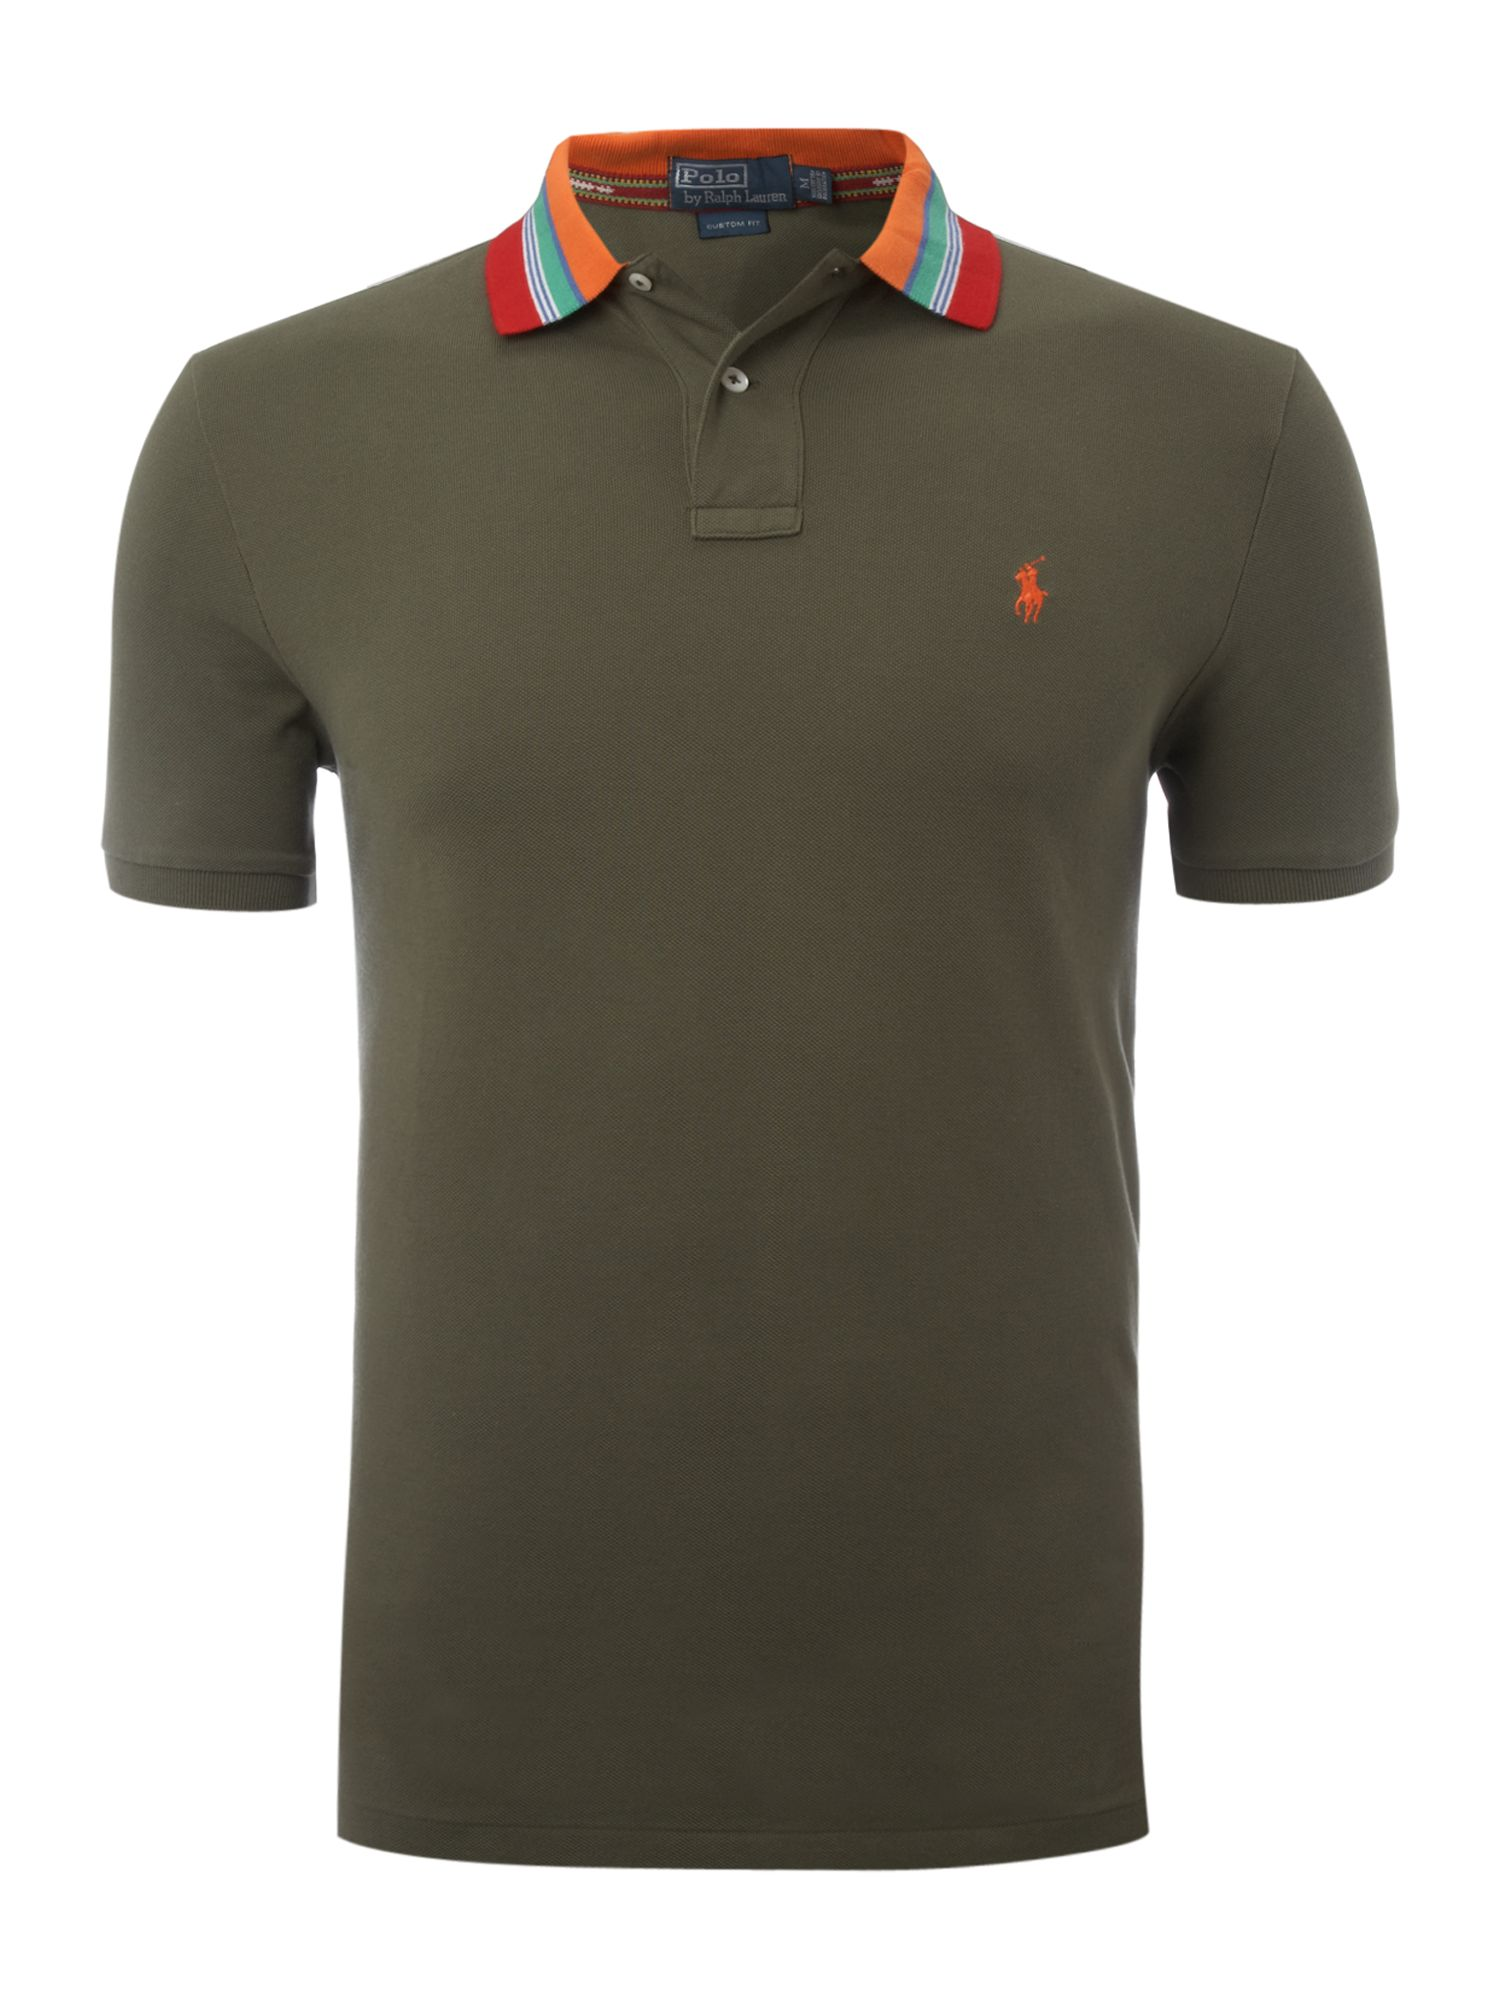 Polo Ralph Lauren Custom Fitted Striped Collar Polo Shirt